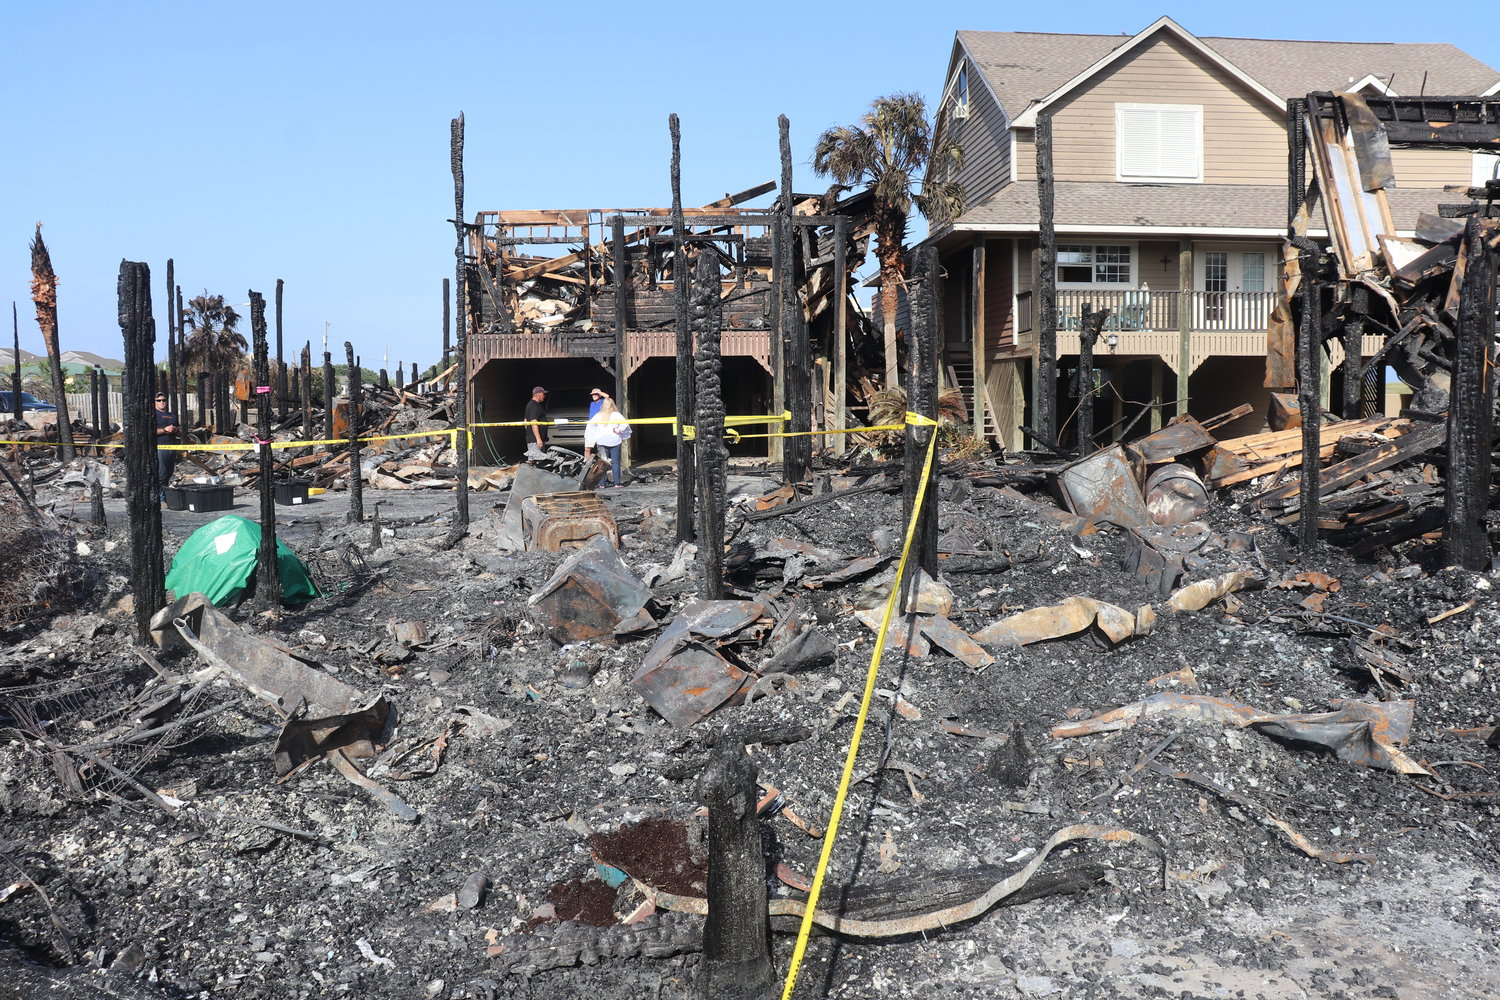 Little is left of the condo homes in Key Harbour and Pescador Landing after fire engulfed the neighborhood early Wednesday morning.